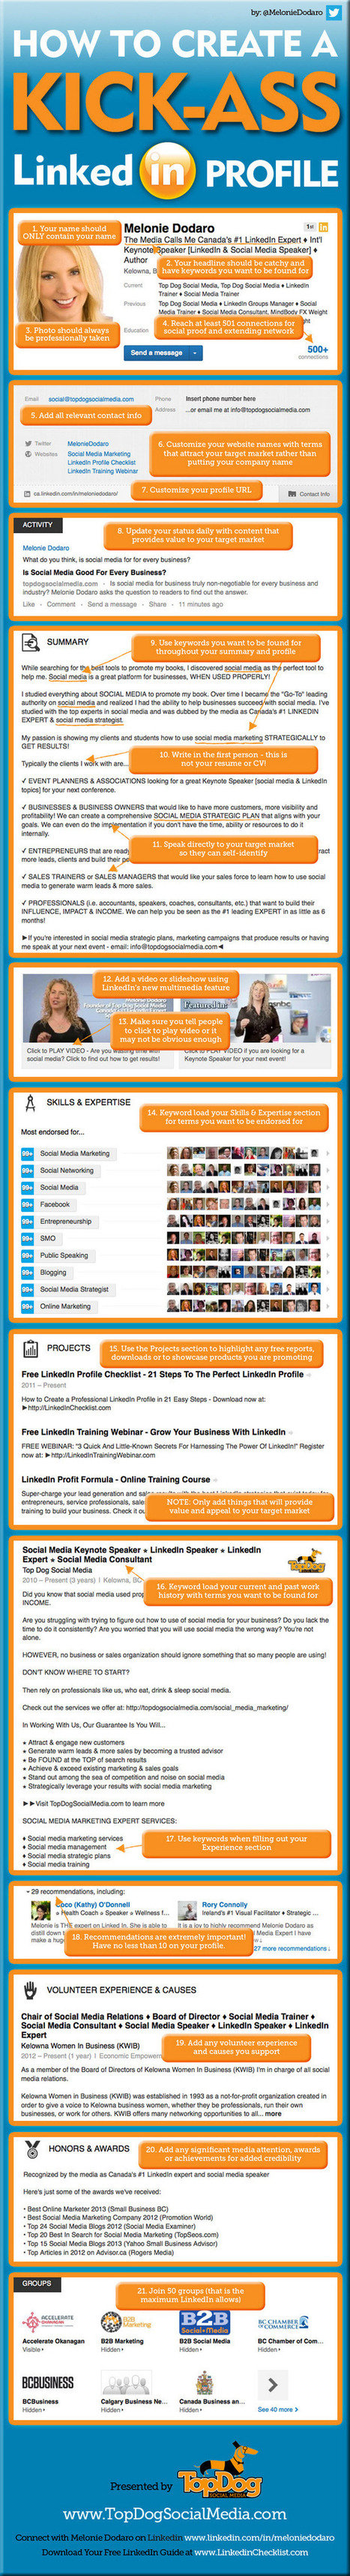 21 Steps to Create an Awesome LinkedIn Profile - Jeffbullas's Blog | Online Marketing | Scoop.it